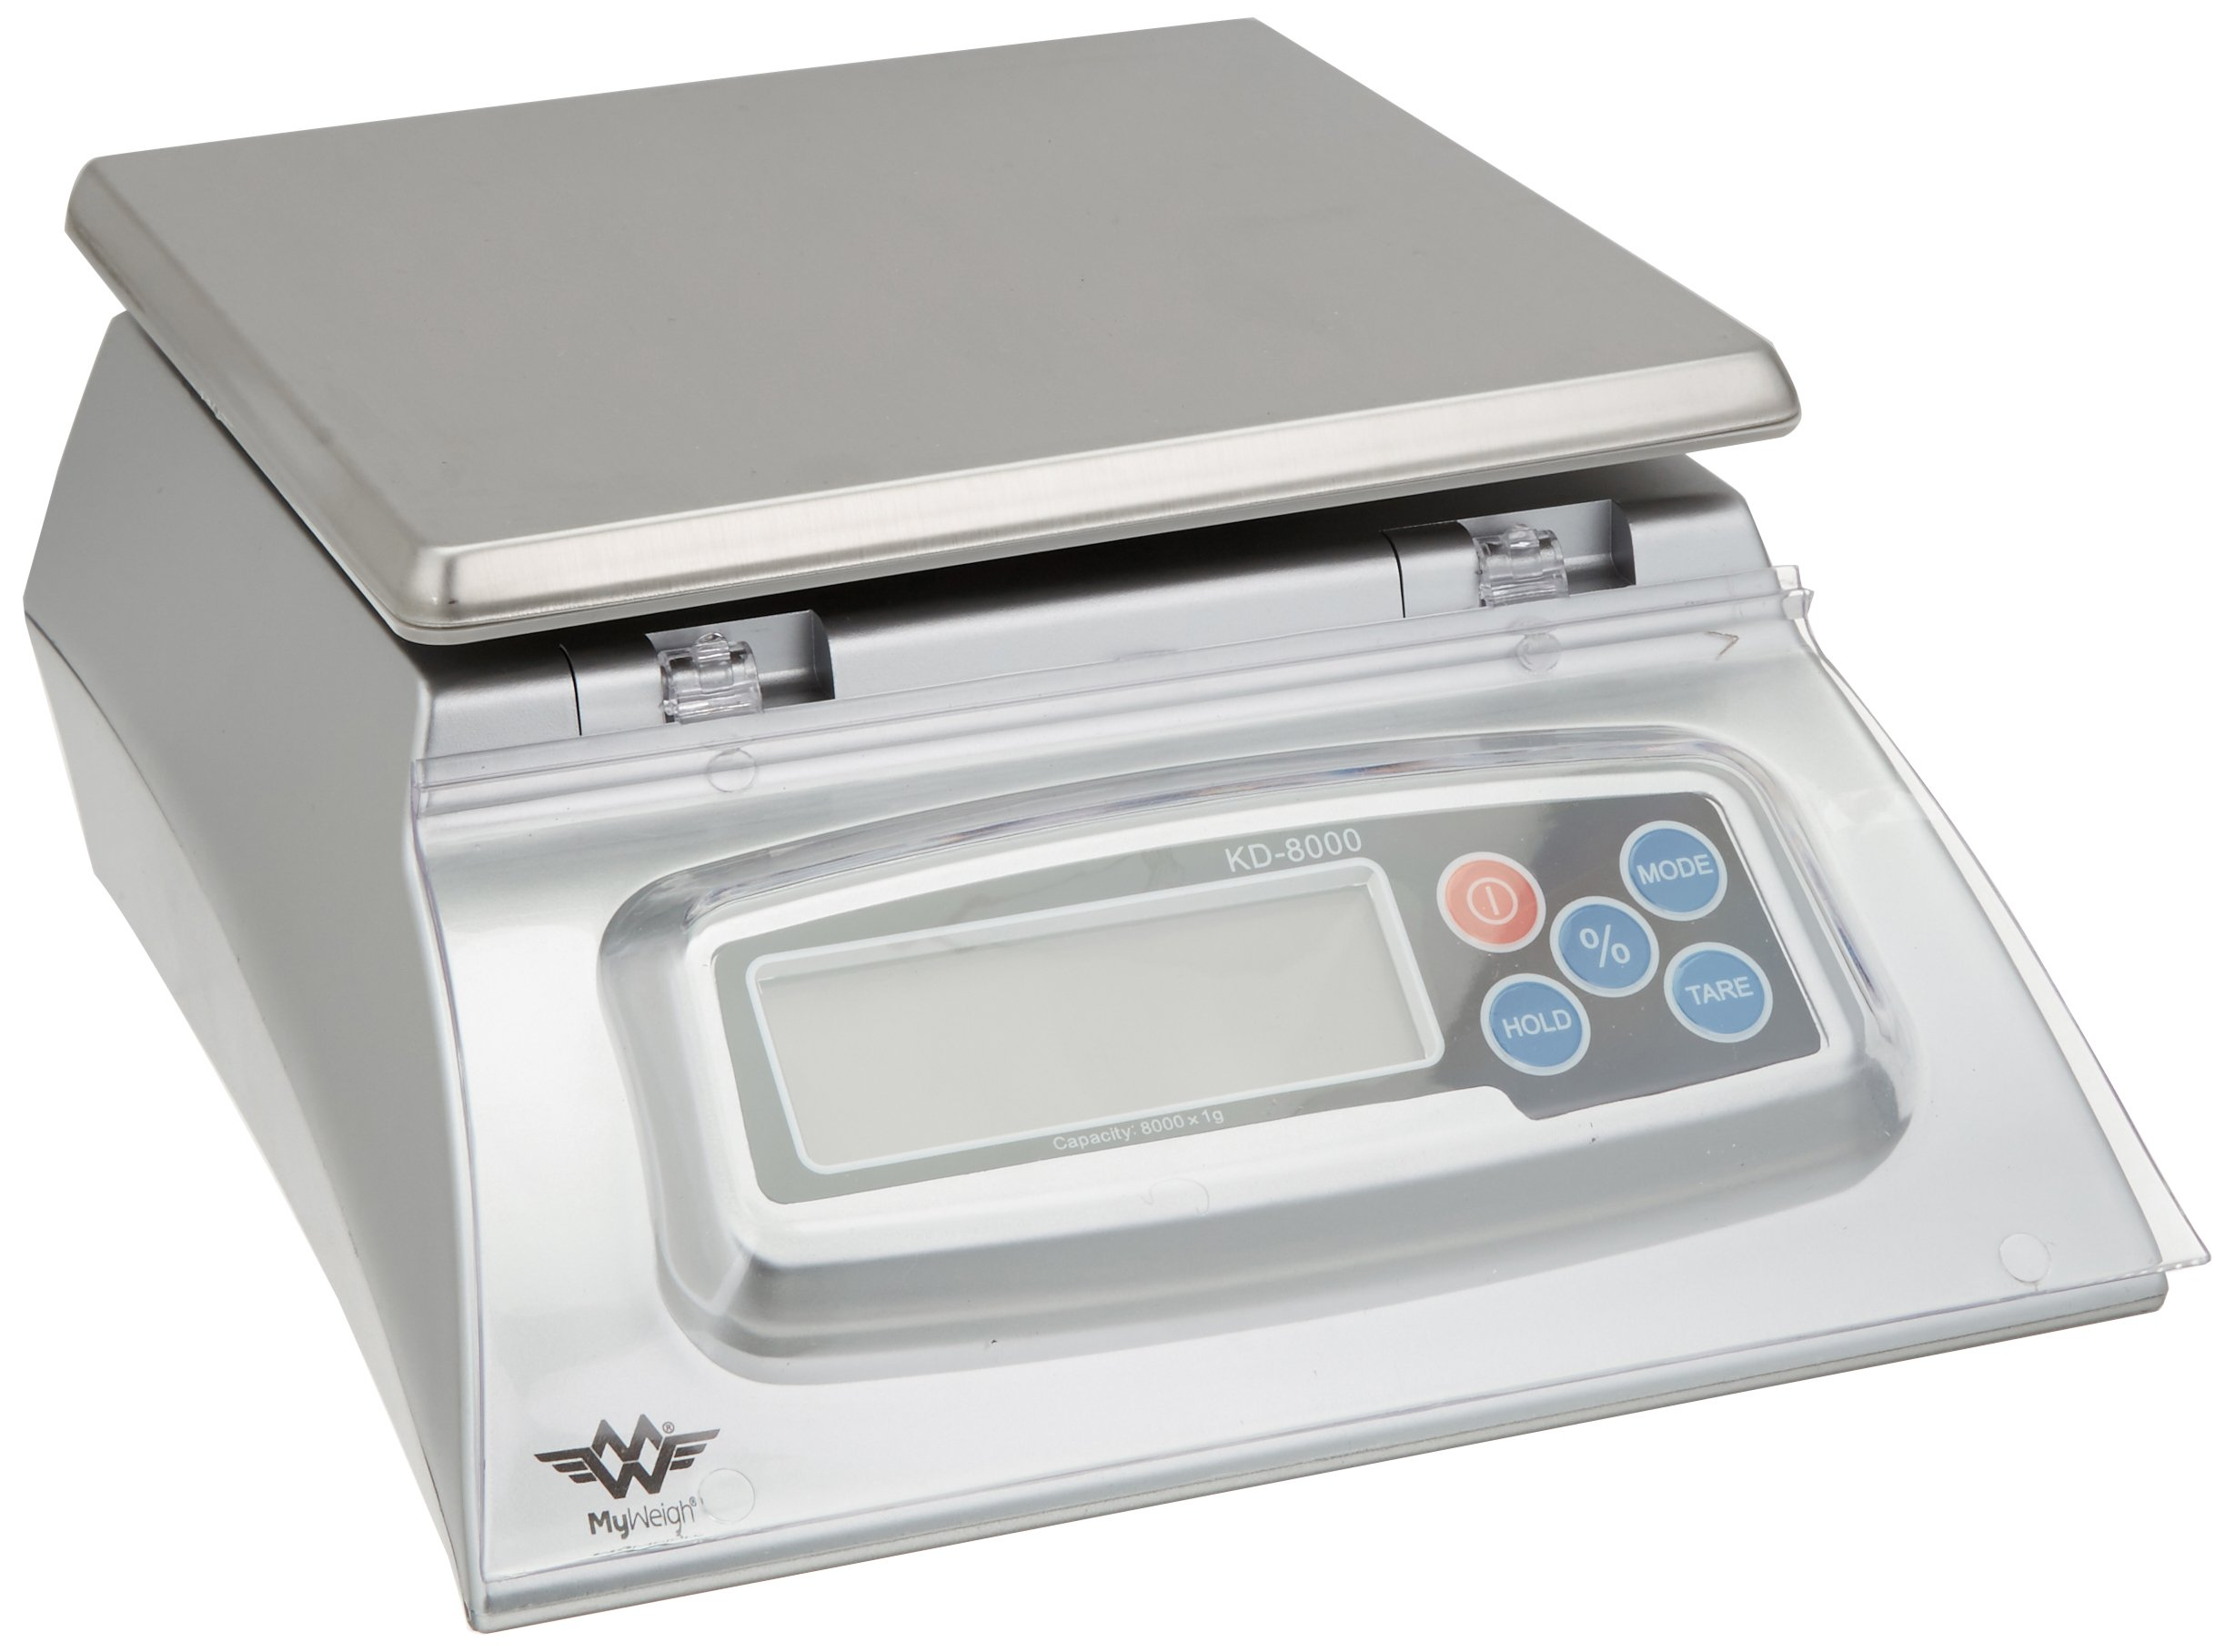 Kitchen Scale - Bakers Math Kitchen Scale - KD8000 Scale by My Weight, Silver by My Weigh